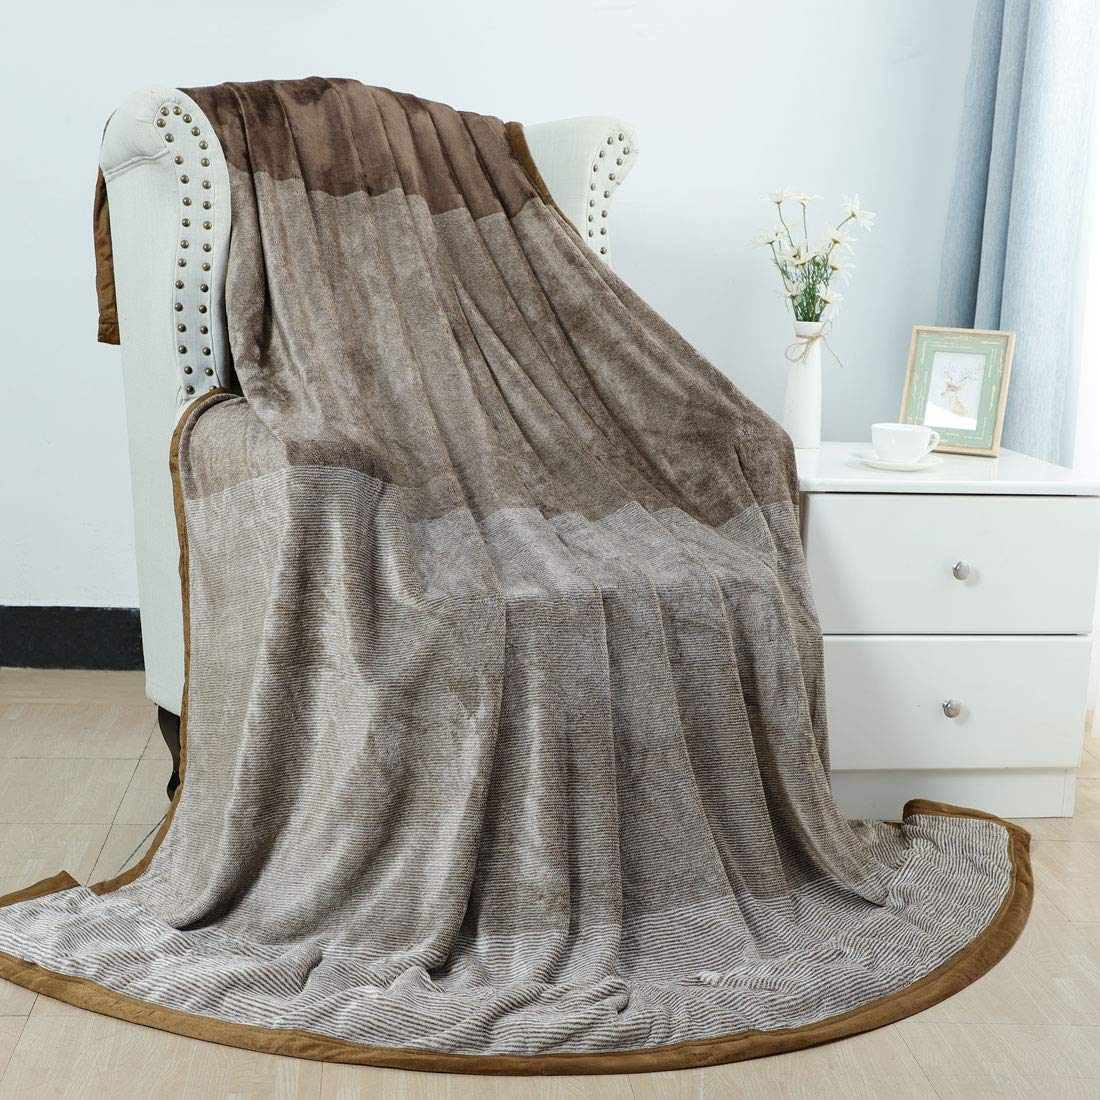 PICCOCASA Flannel Fleece Blanket Full Size Soft Warm Fuzzy Microfiber Plush Blanket Brown Gradient Ombre Blankets for Bed or Couch 70 x 88